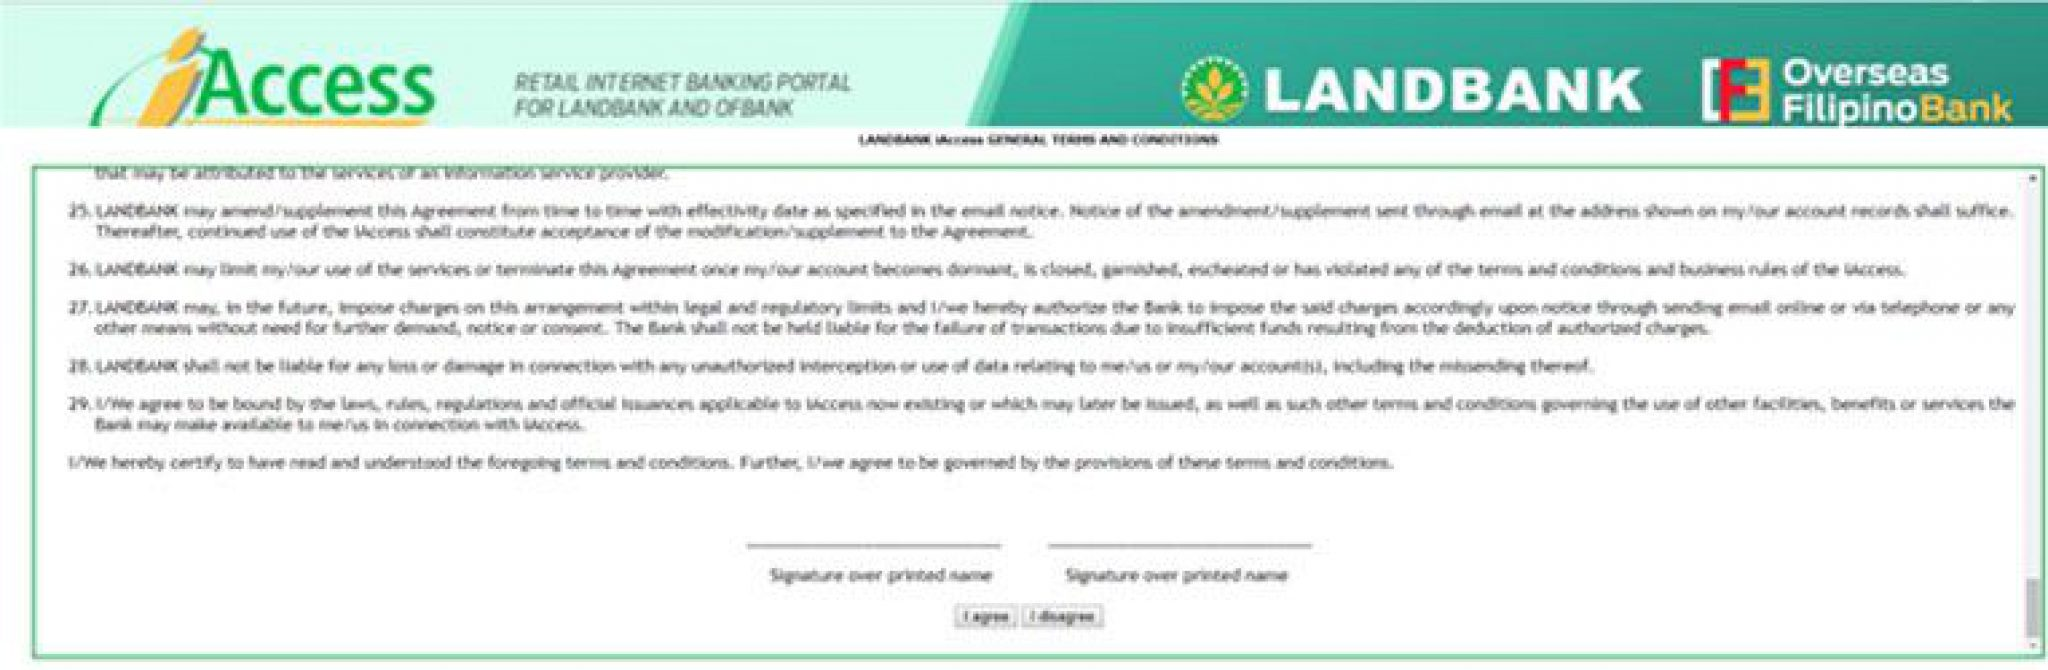 Landbank iAccess Terms and Conditions